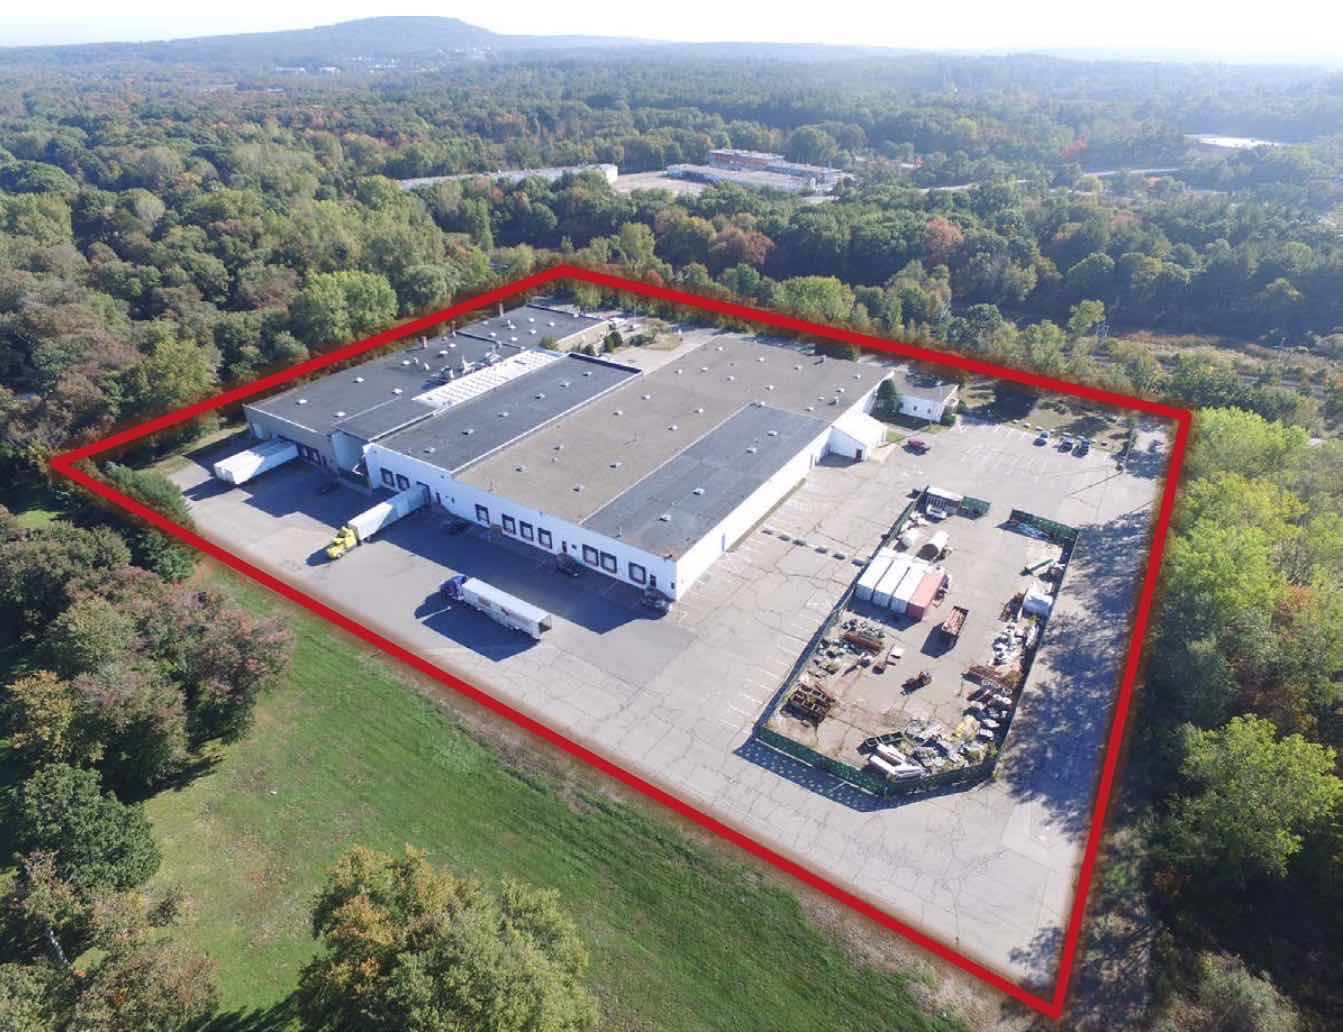 15 21 university road industrial property canton ma calare properties jll for lease